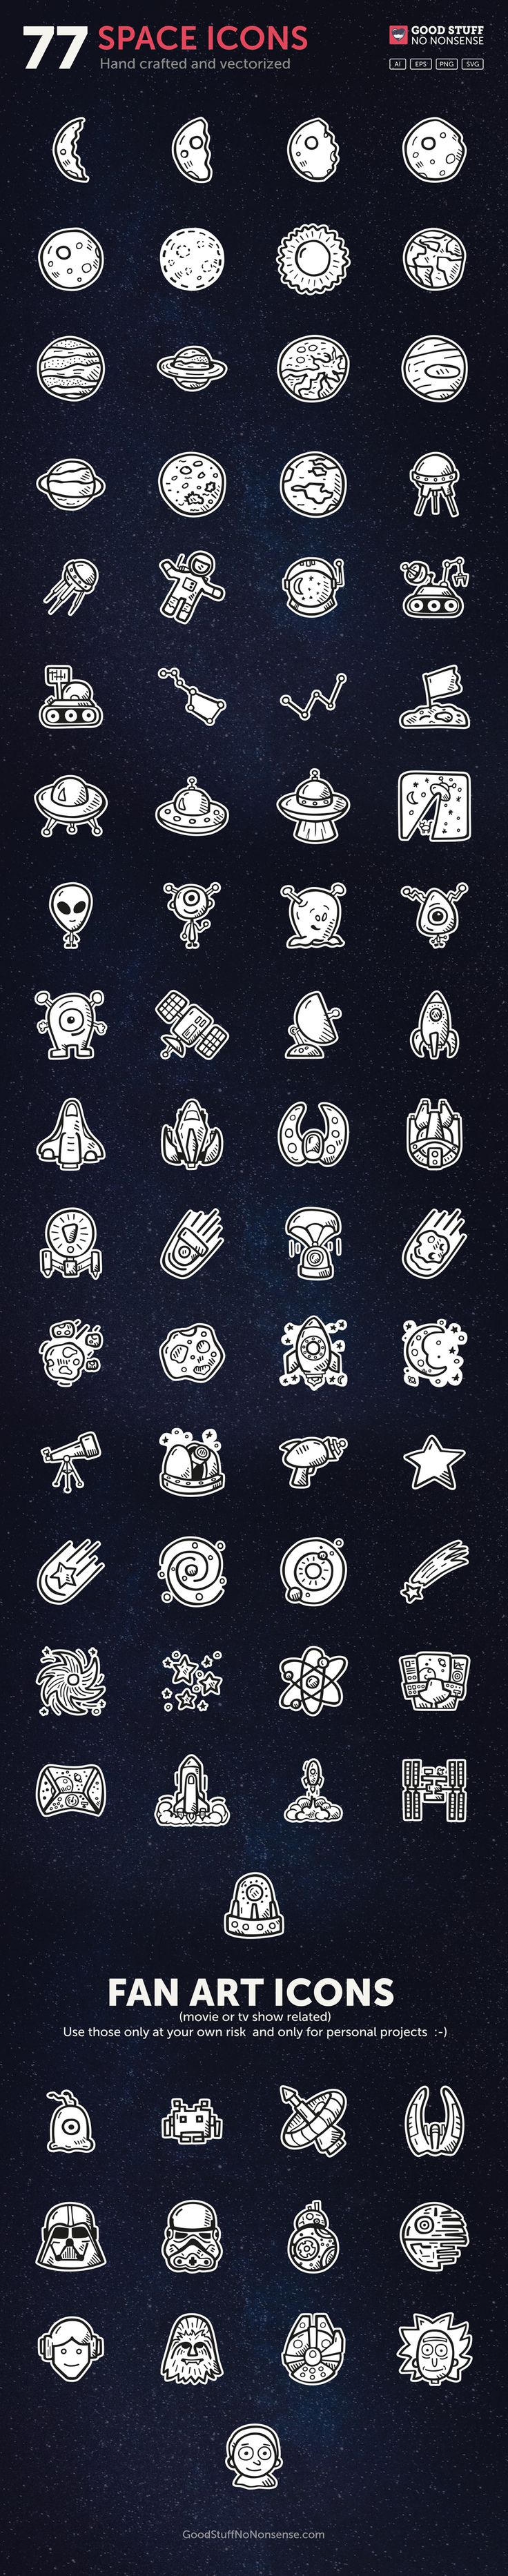 FREE Space Icons vector made by @GoodStuffNoNonsense #icons #handrawn #icondesign